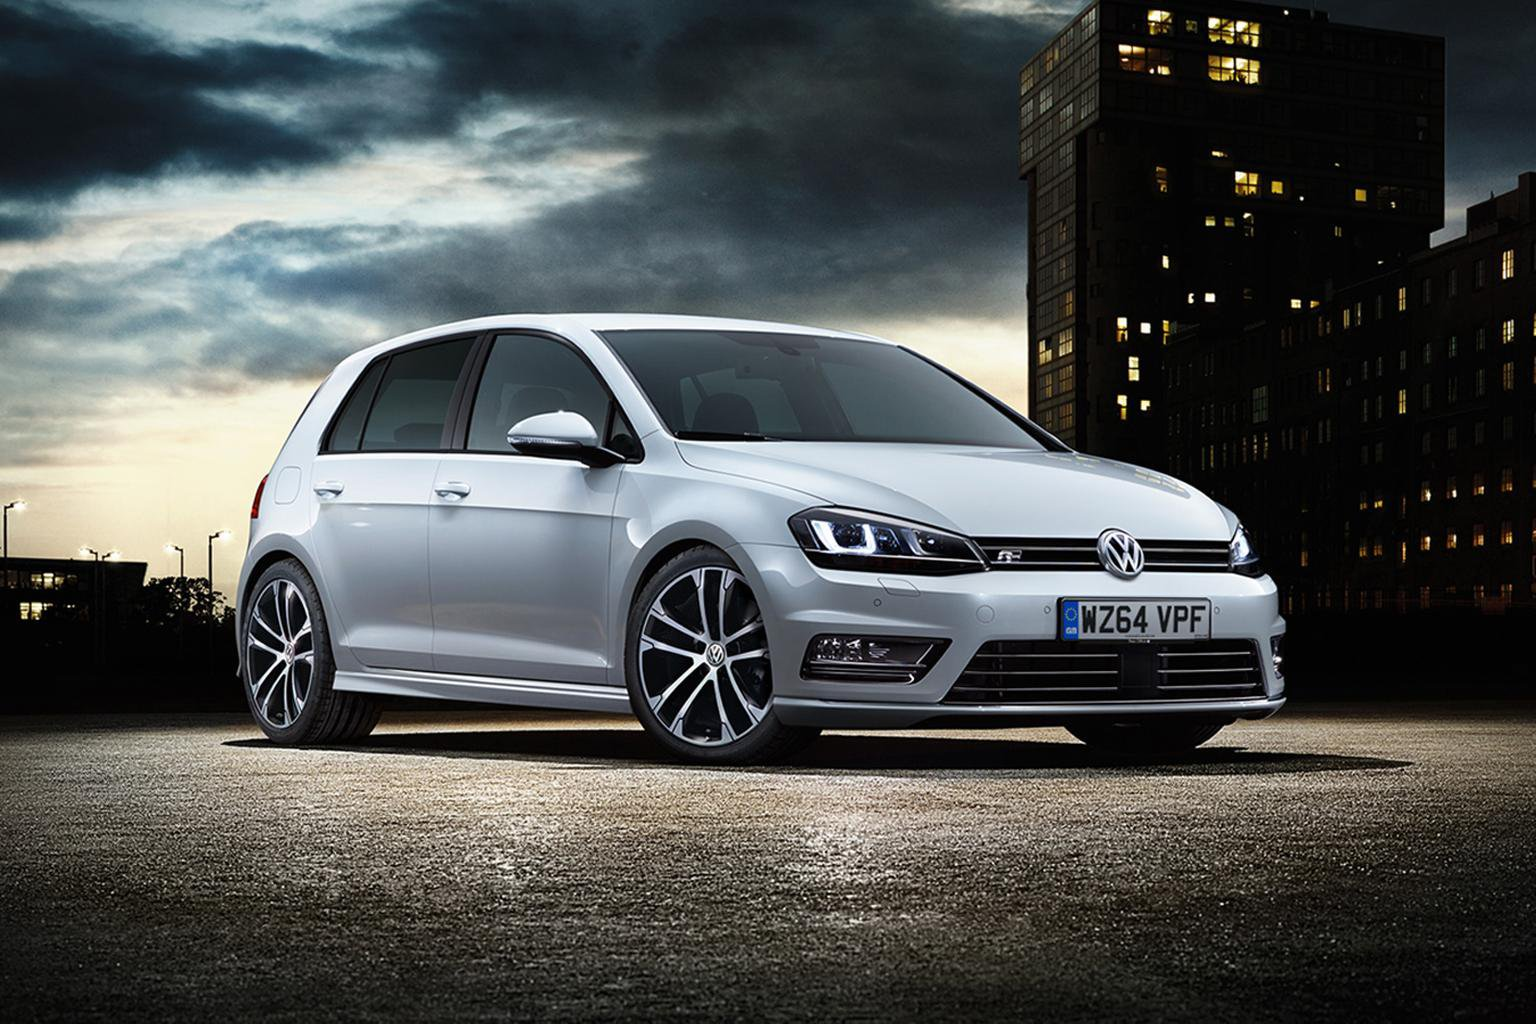 Volkswagen launches new R-line trim level for Golf